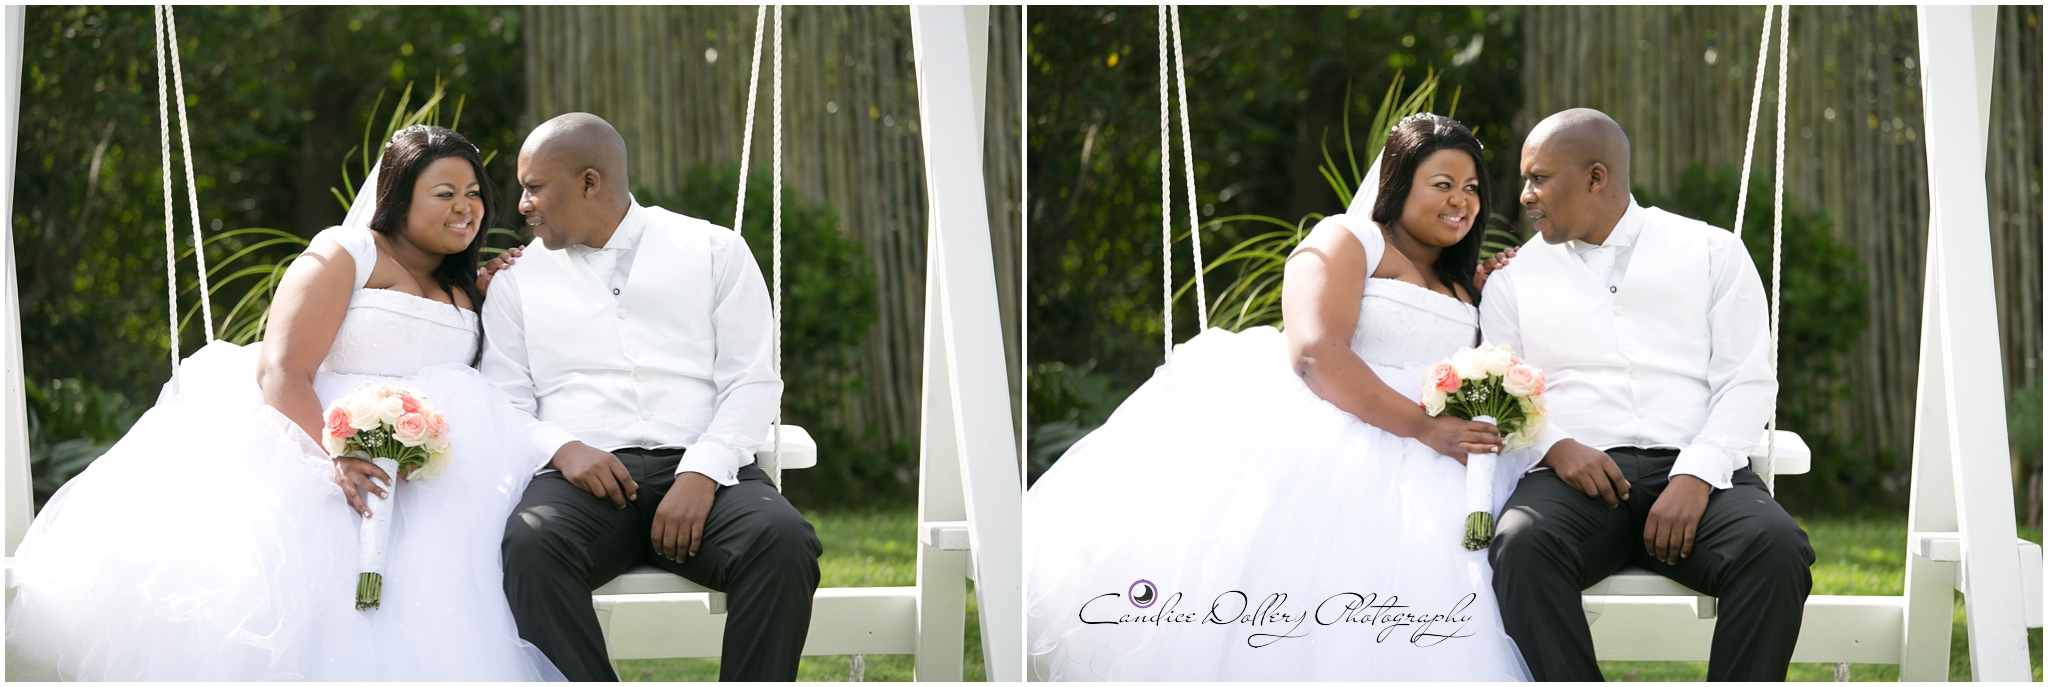 Wedding Gonubie Manor Thola & Phili-Candice Dollery Photograhy_4282